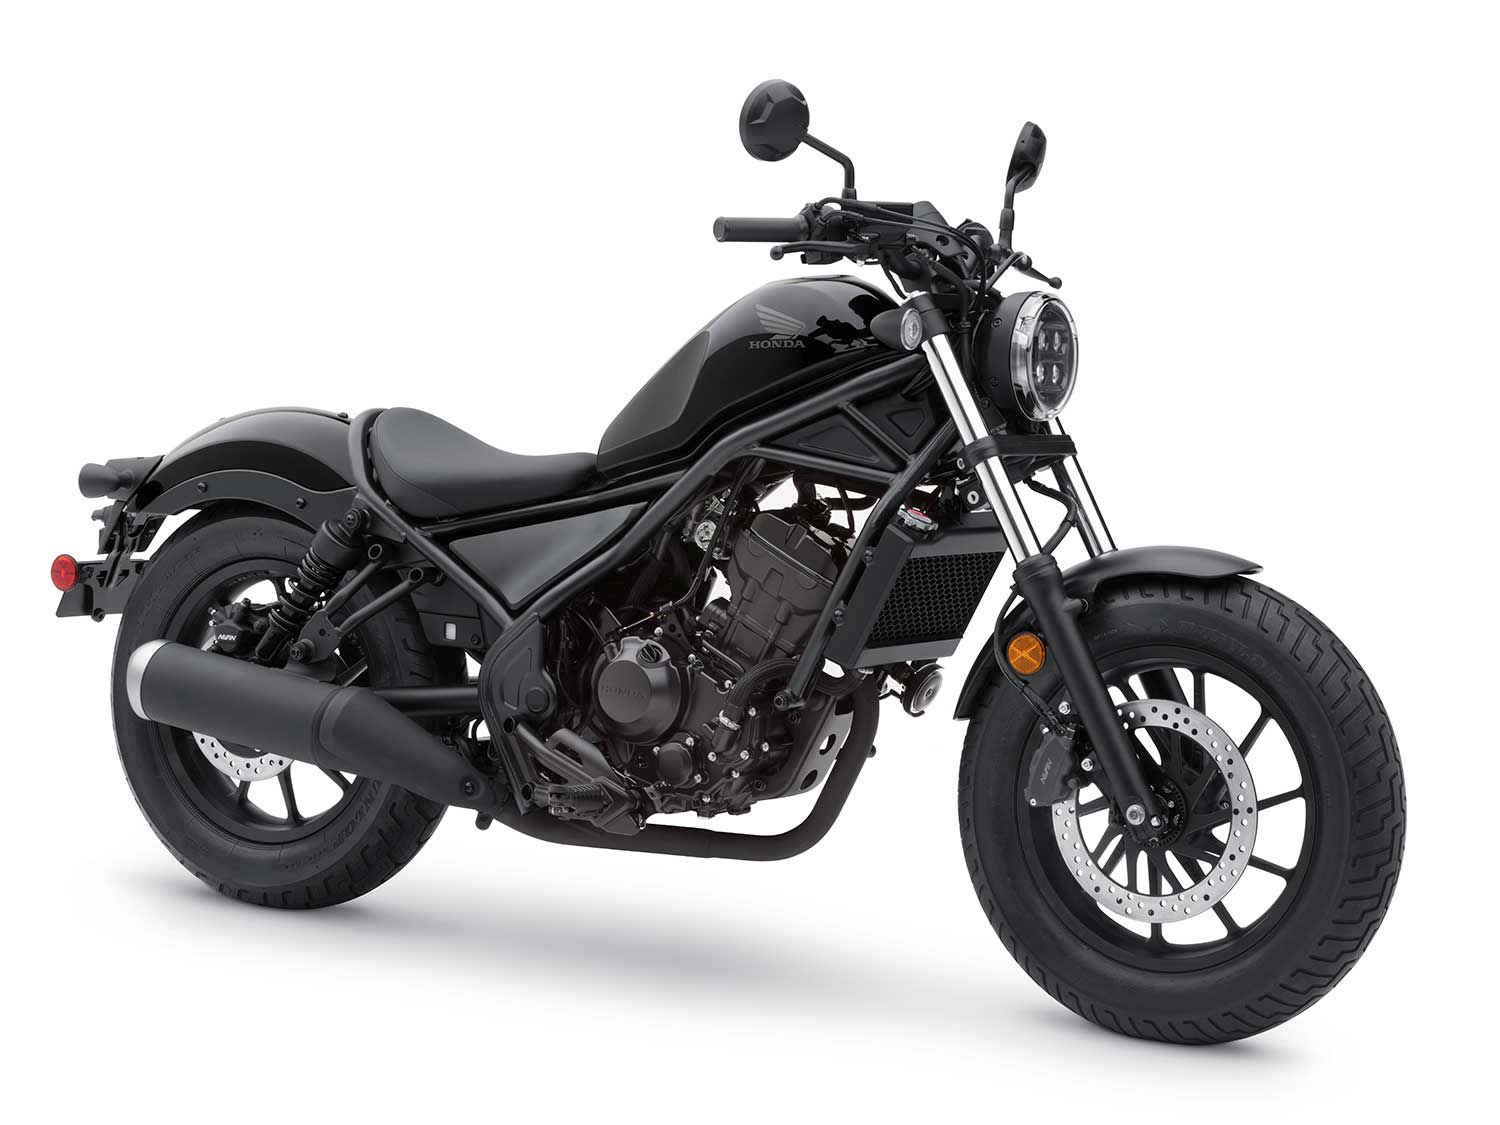 <h2>2020 Honda Rebel 300</h2> </br> Honda's small-displacement cruiser, the 2020 Rebel 300 has seen some changes such as the assist-slipper clutch and updates to the front and rear suspension.